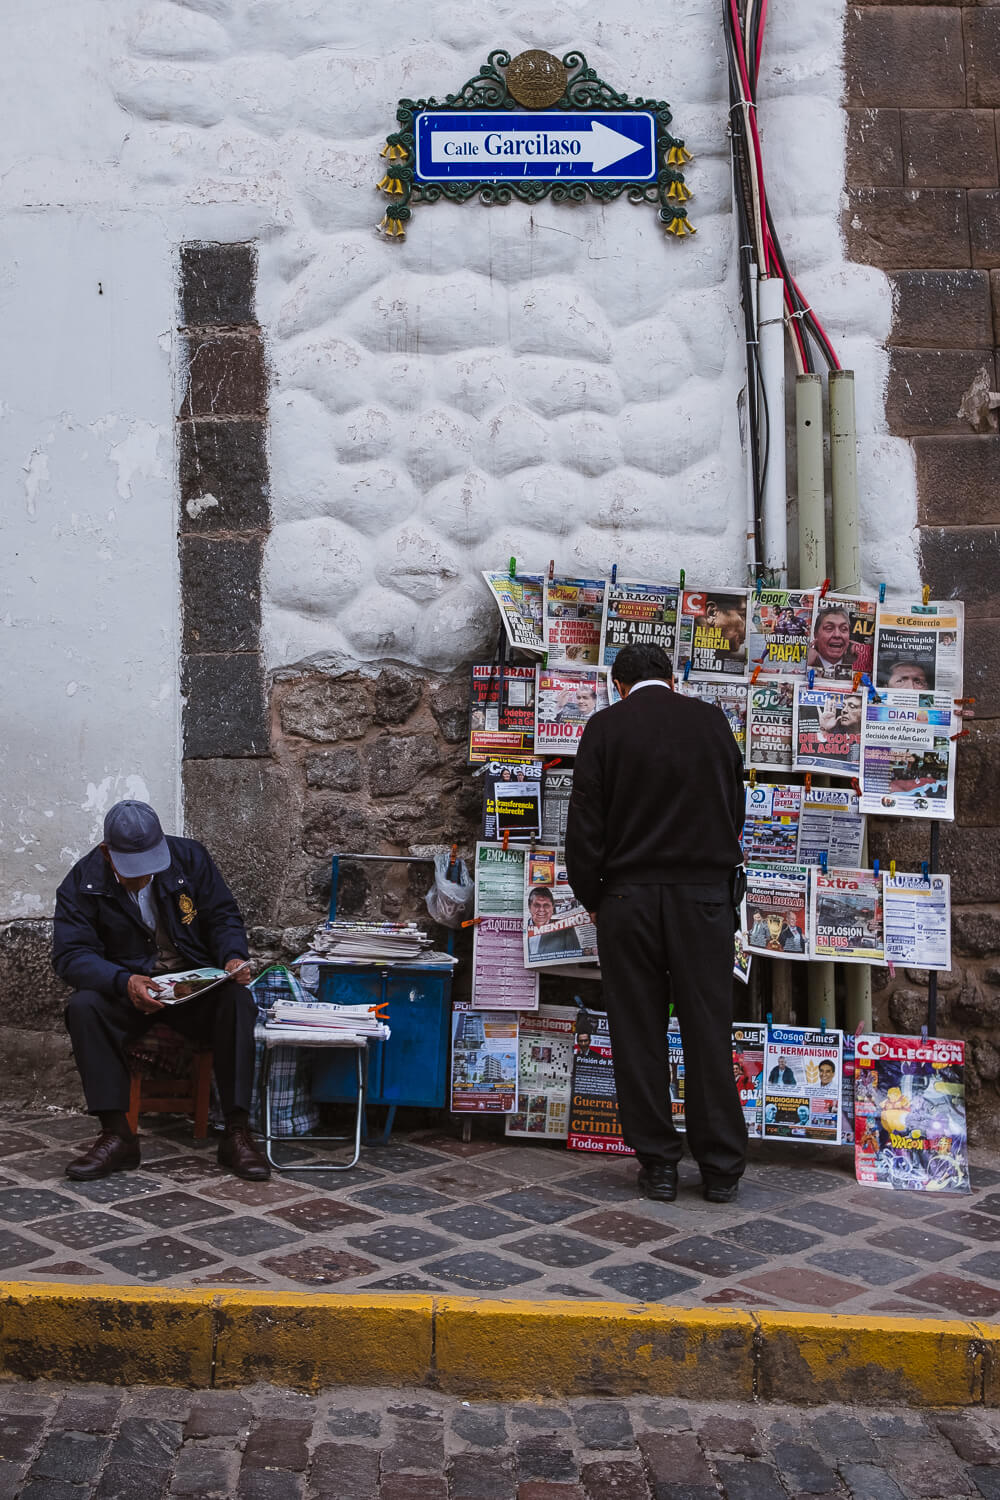 """The streets of Cusco. Travel photography and guide by © Natasha Lequepeys for """"And Then I Met Yoko"""". #cusco #peru #photoblog #travelblog #peruitinerary #cuscoitinerary"""